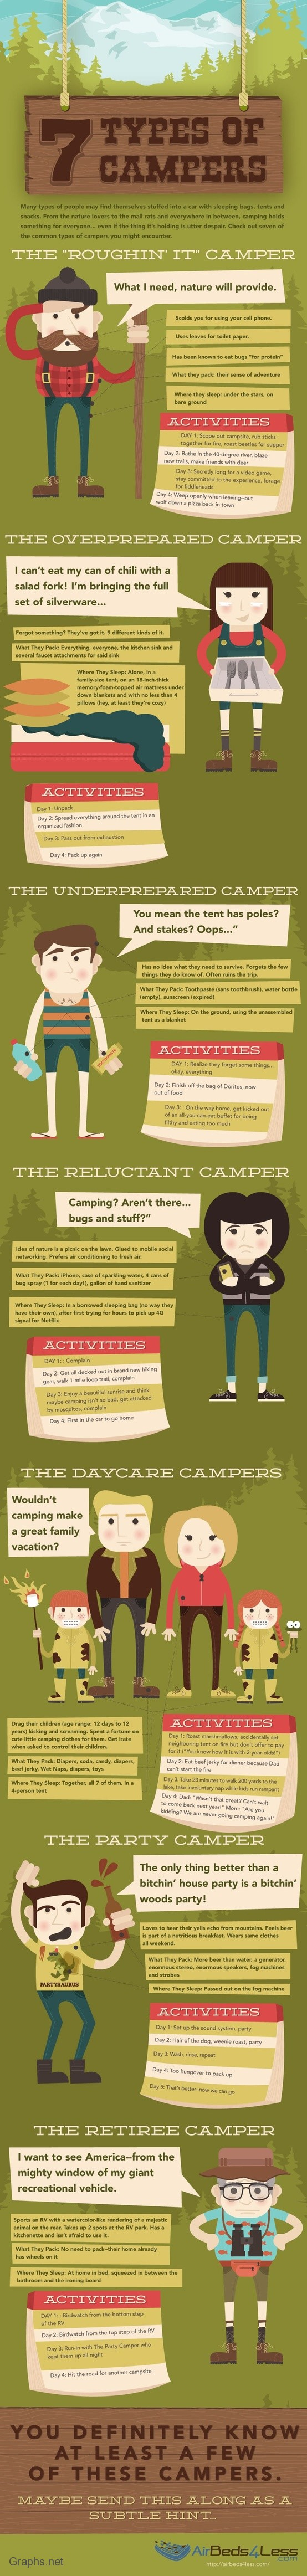 7 Different Types of Campers